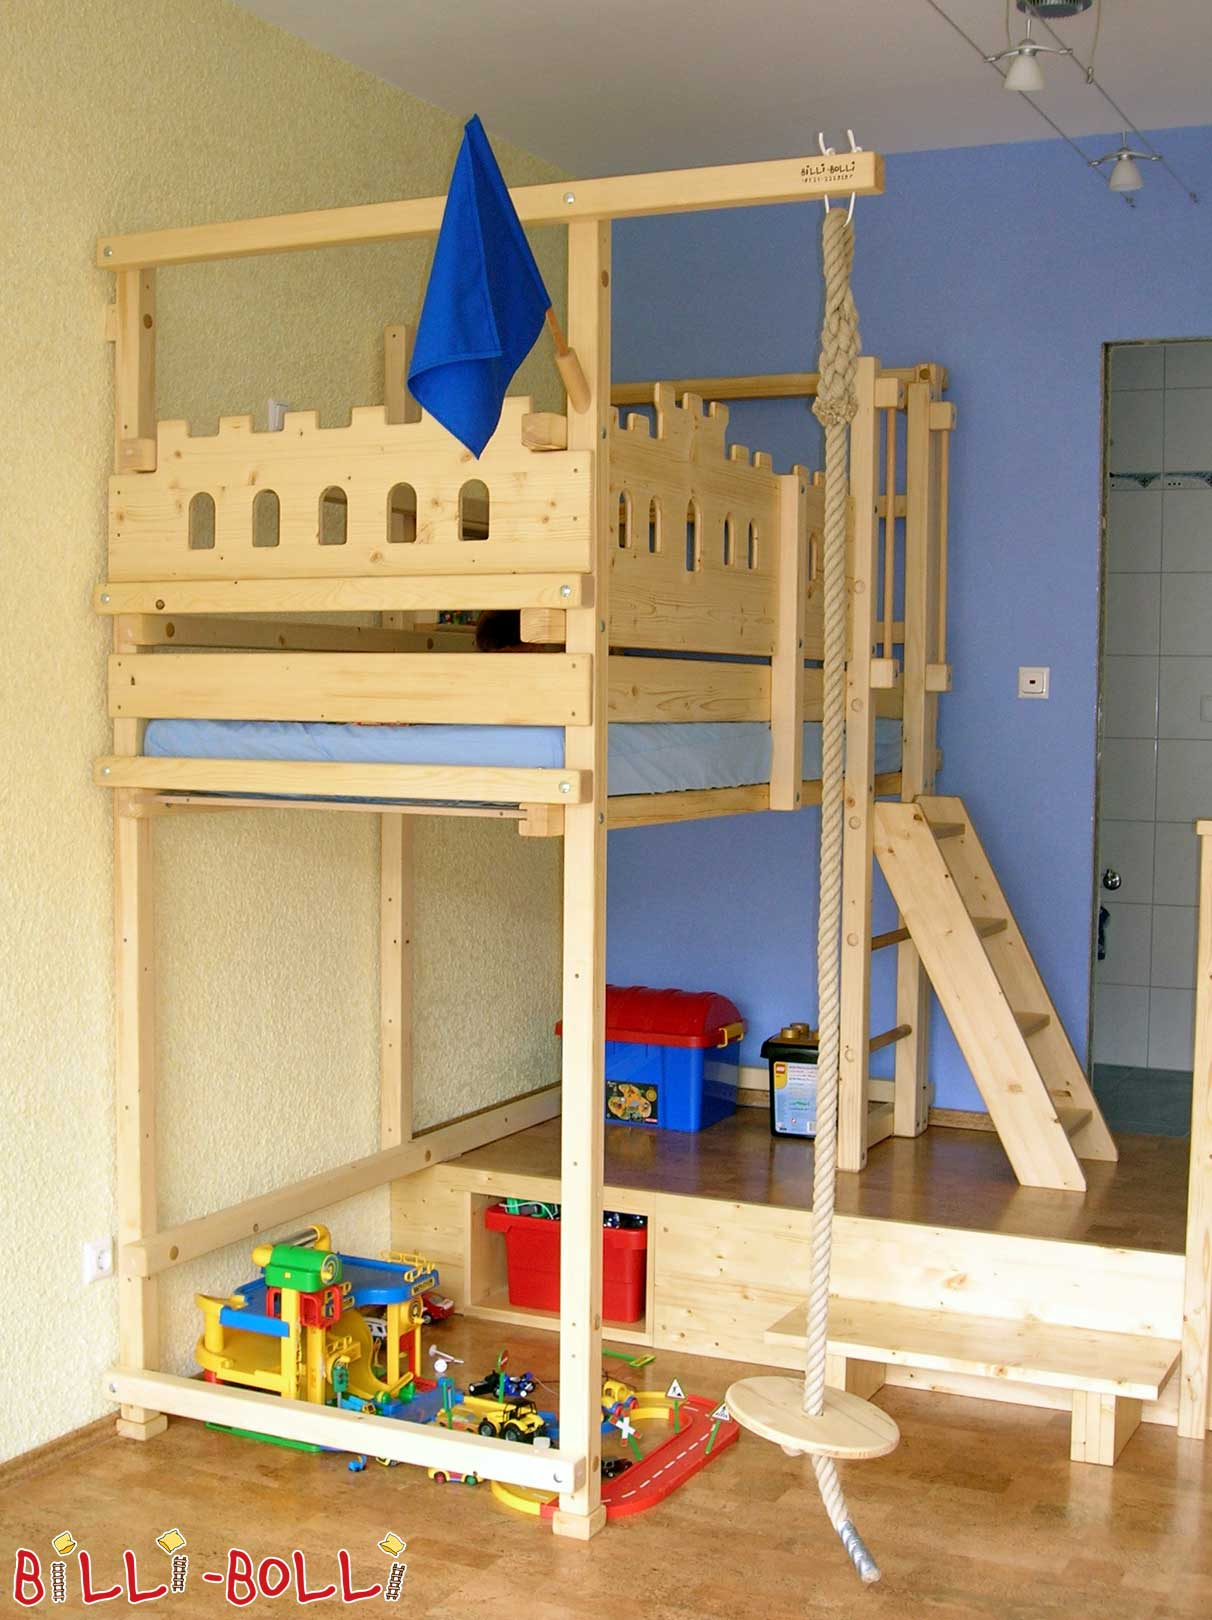 Cot Bed What Age Loft Bed Adjustable By Age Billi Bolli